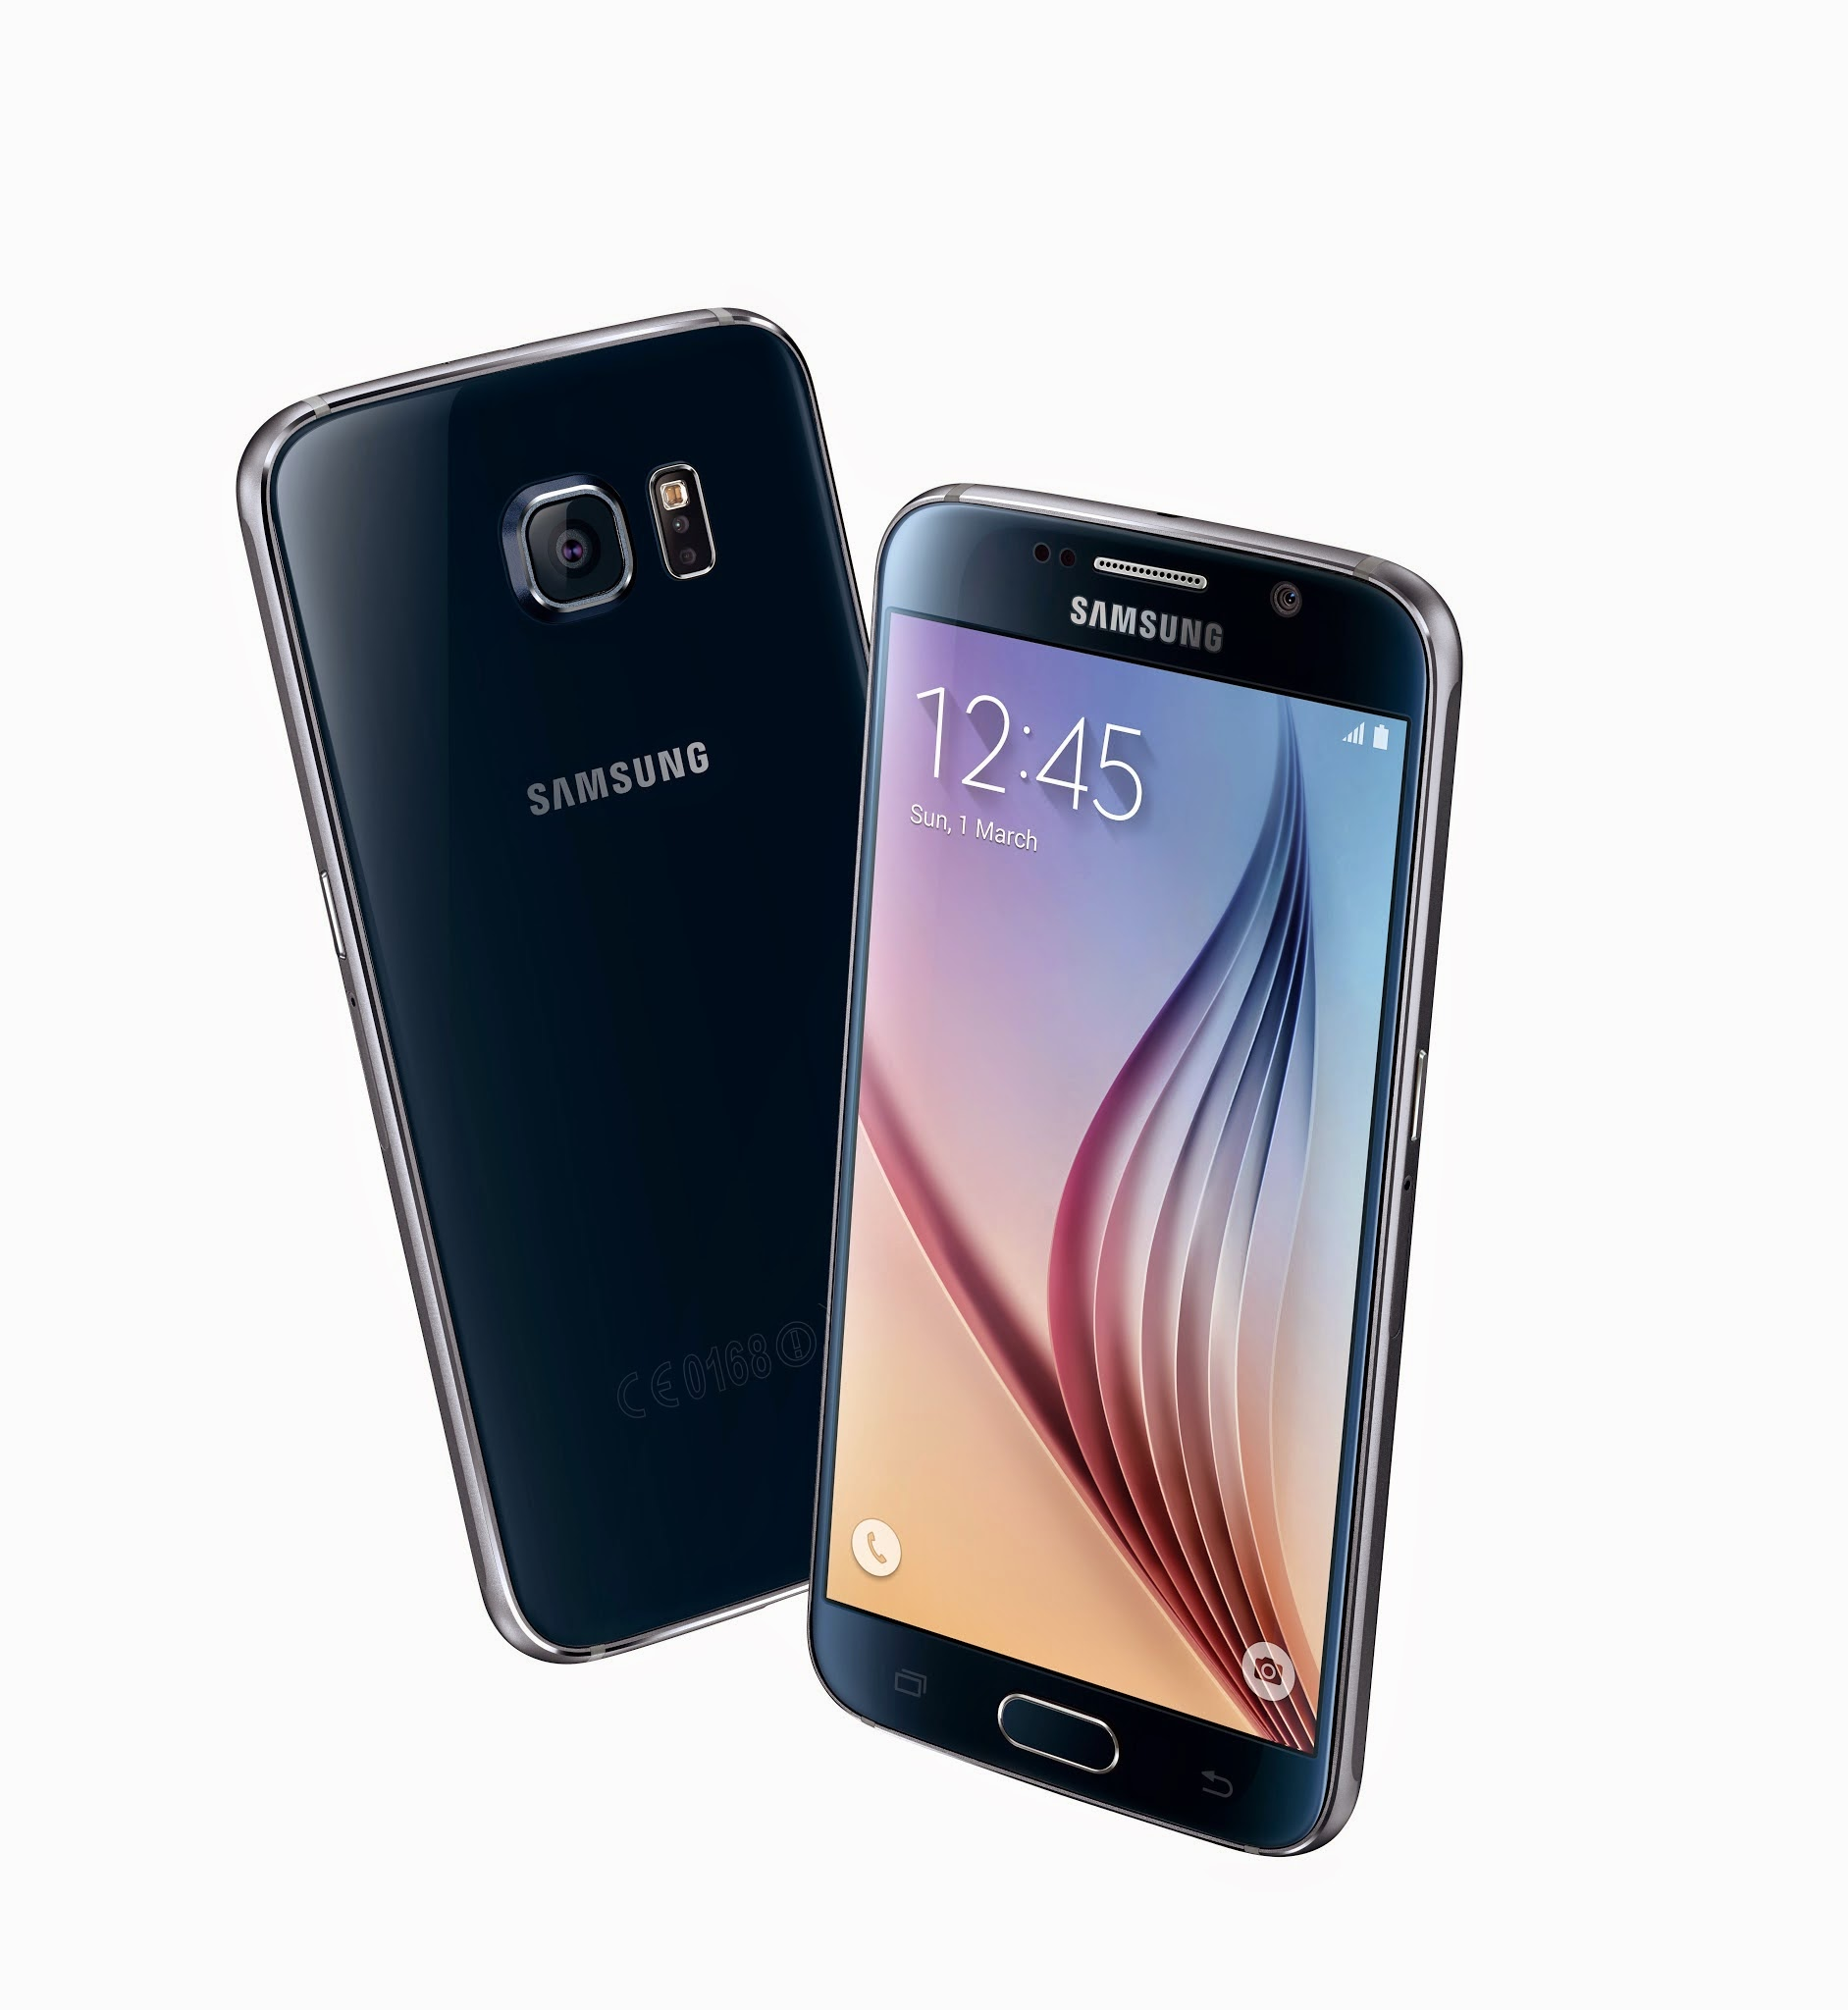 #MWC2015 - Samsung officialise le Galaxy S6